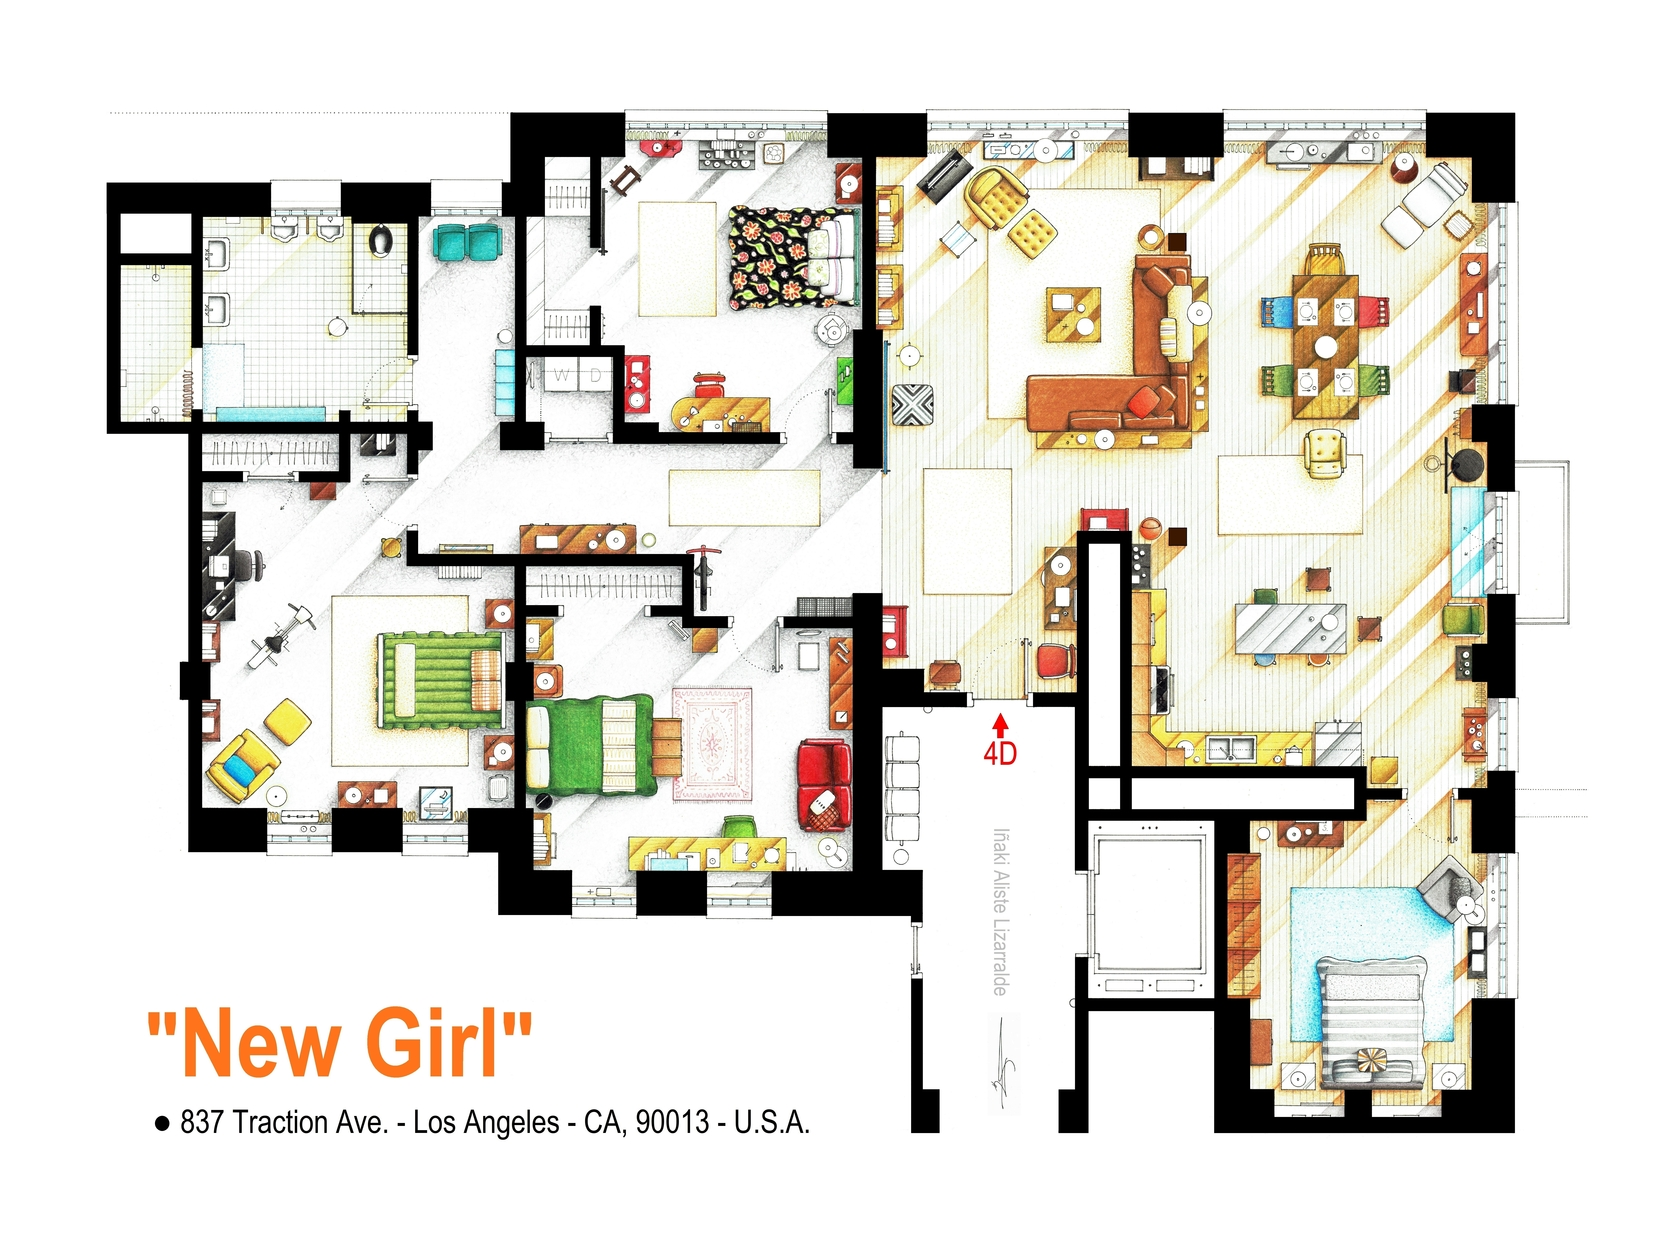 Floorplan of the loft from NEW GIRL